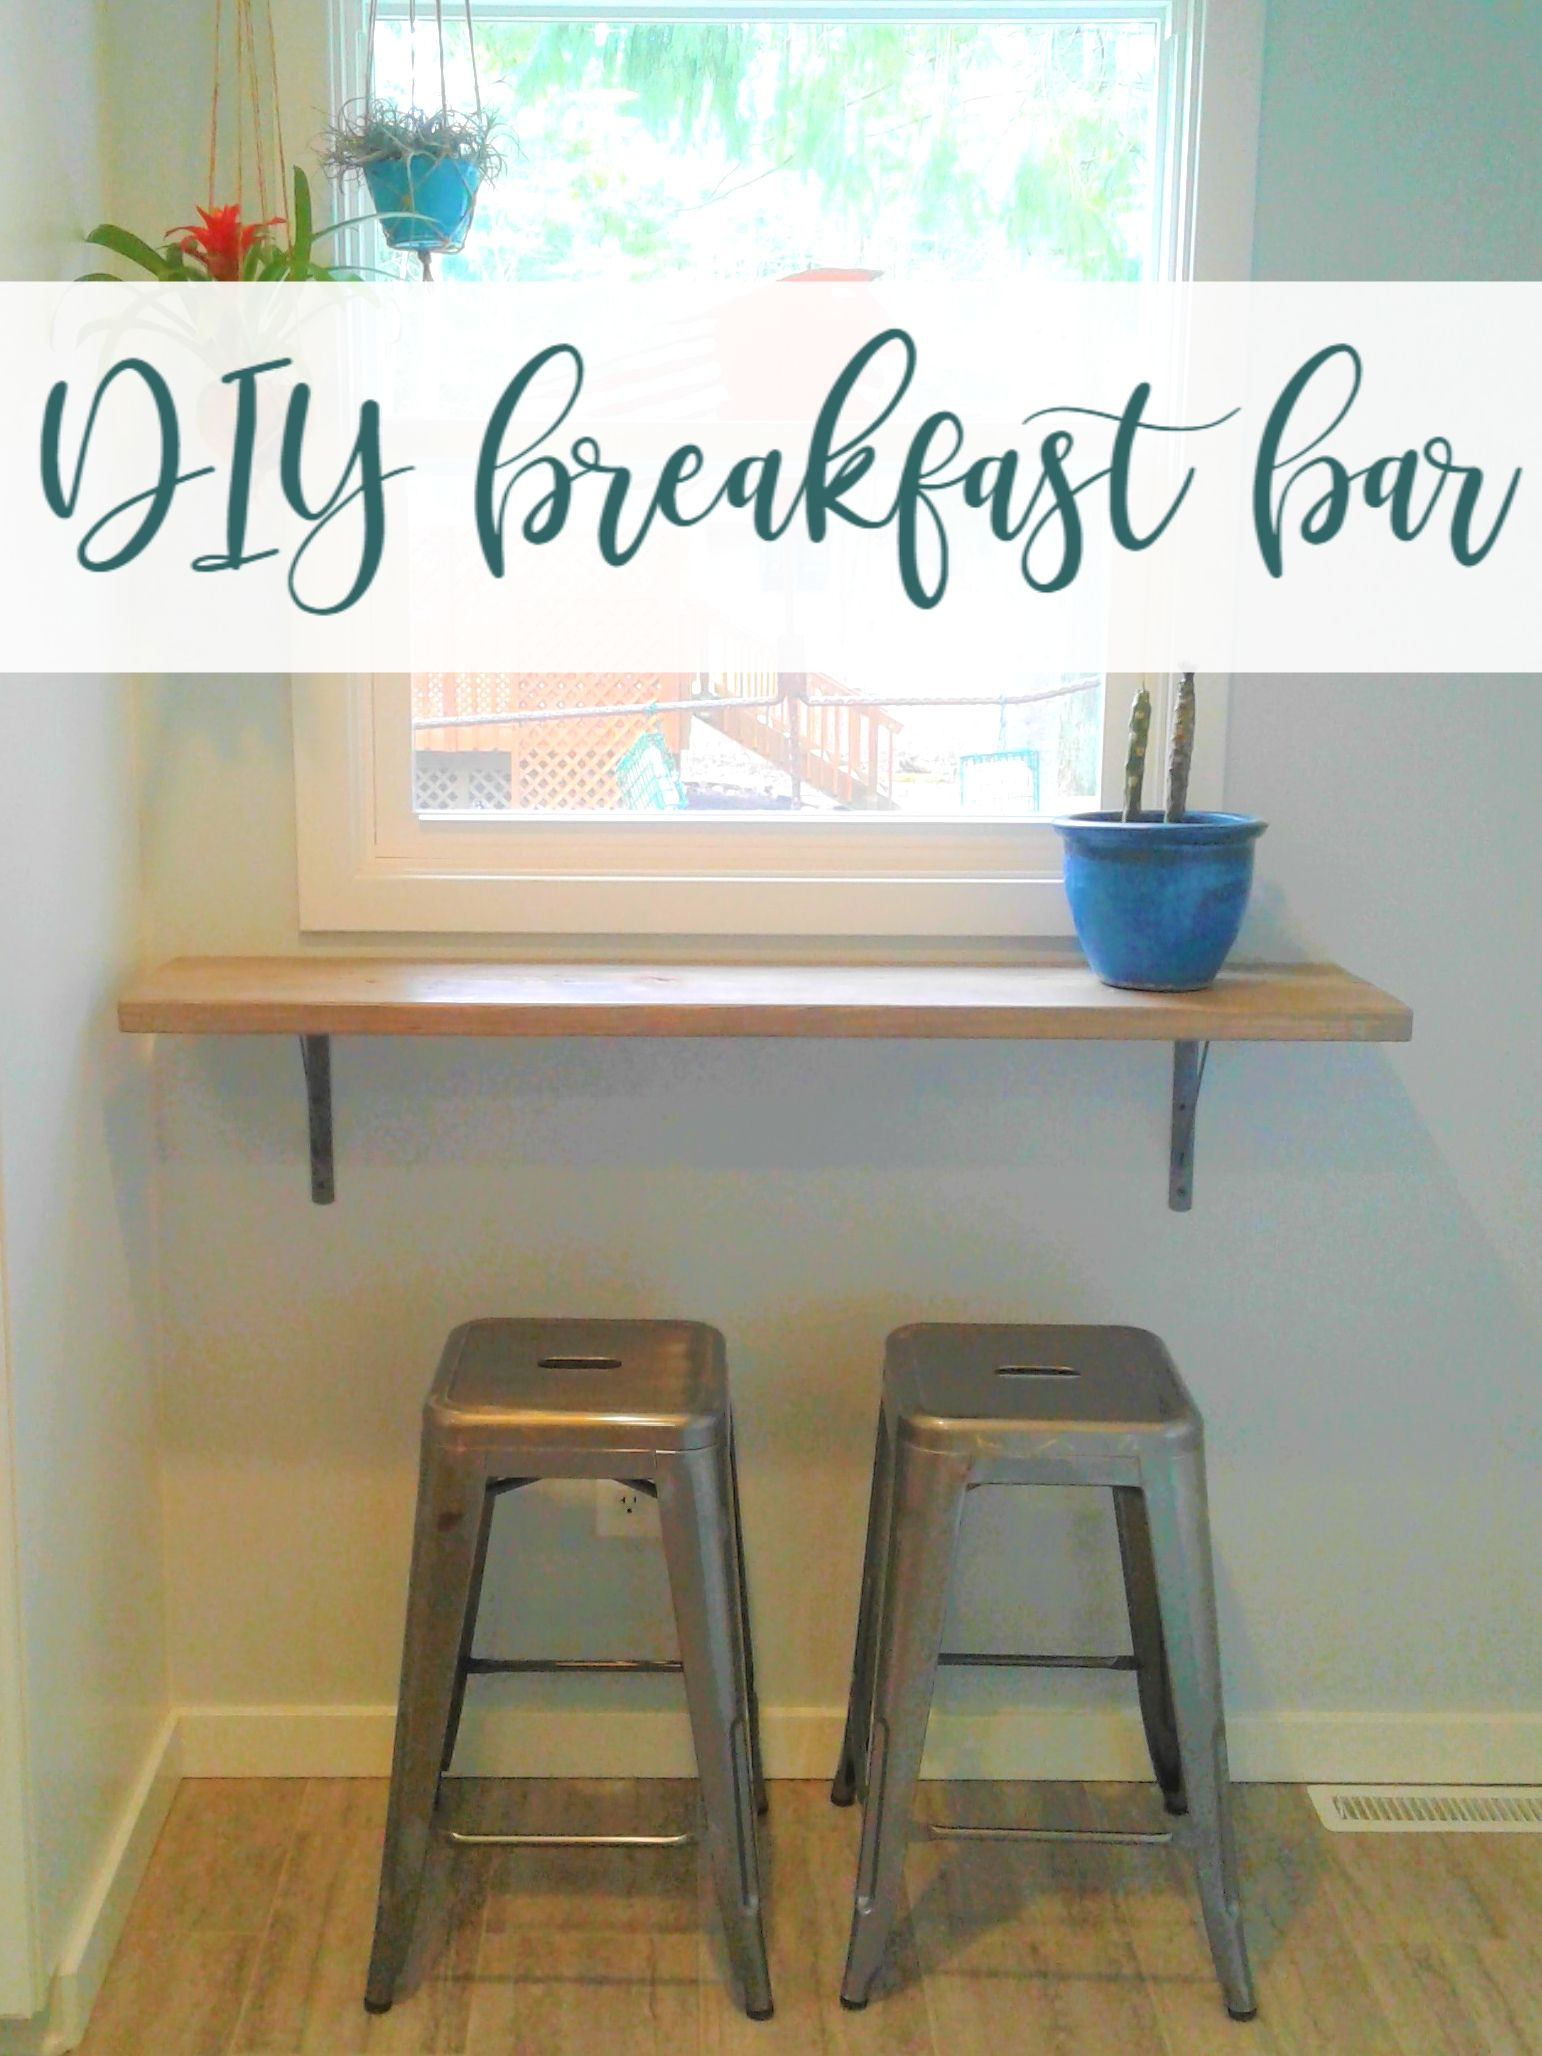 How To Add A Small Breakfast Bar Counter Underneath A Kitchen Window Perfect Spot To Enjoy My Morning Small Breakfast Bar Diy Breakfast Bar Home Bar Counter